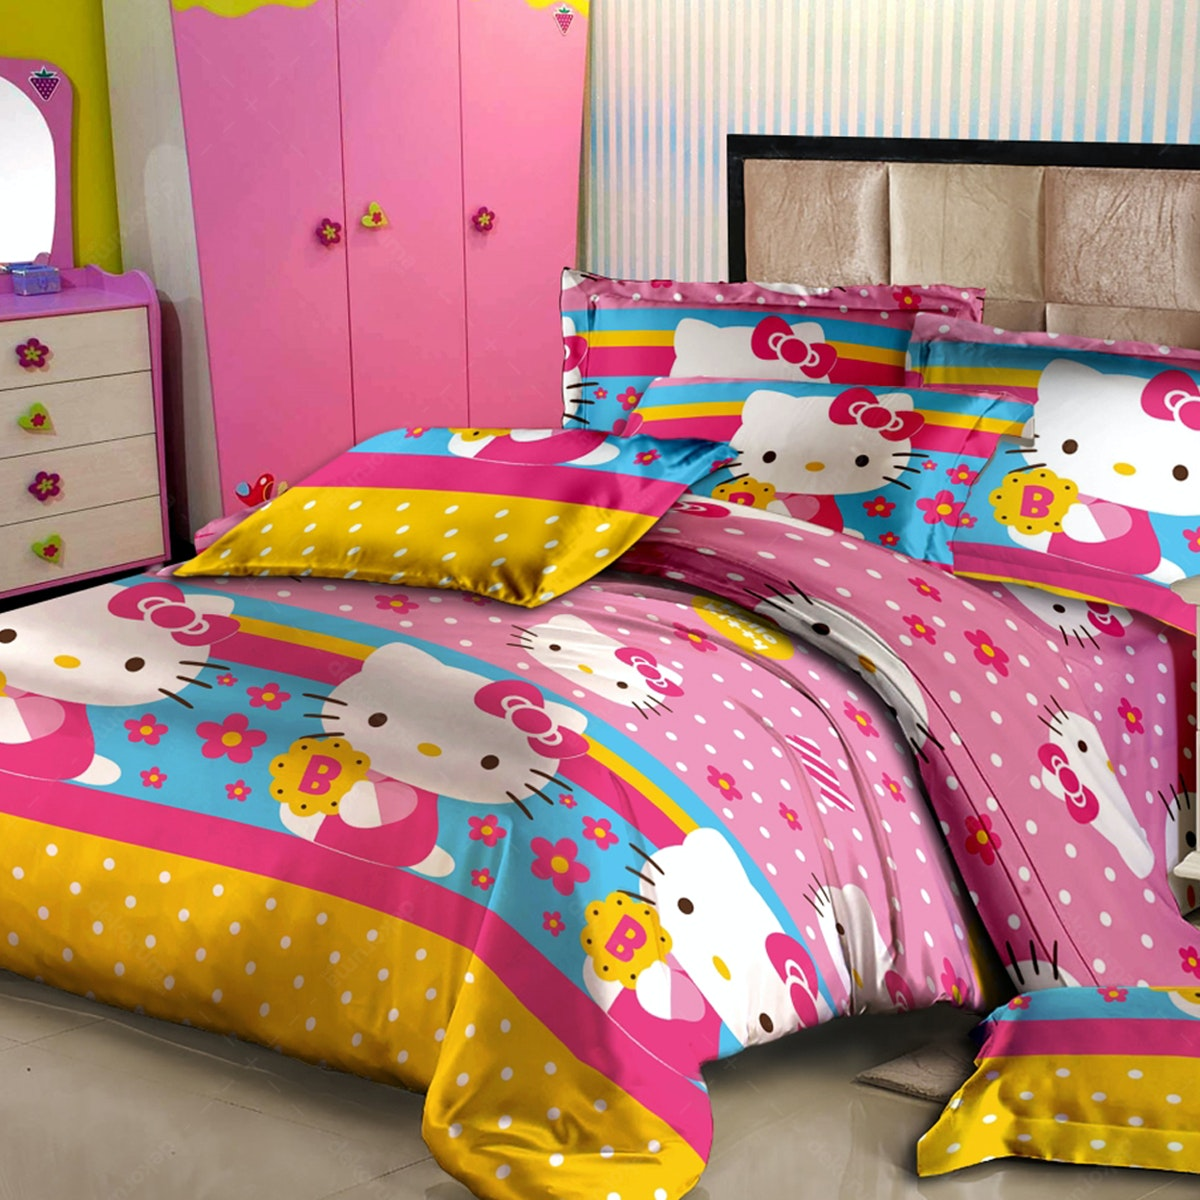 Pesona Disperse Sprei Kitty Merah muda Uk 120x200x20cm